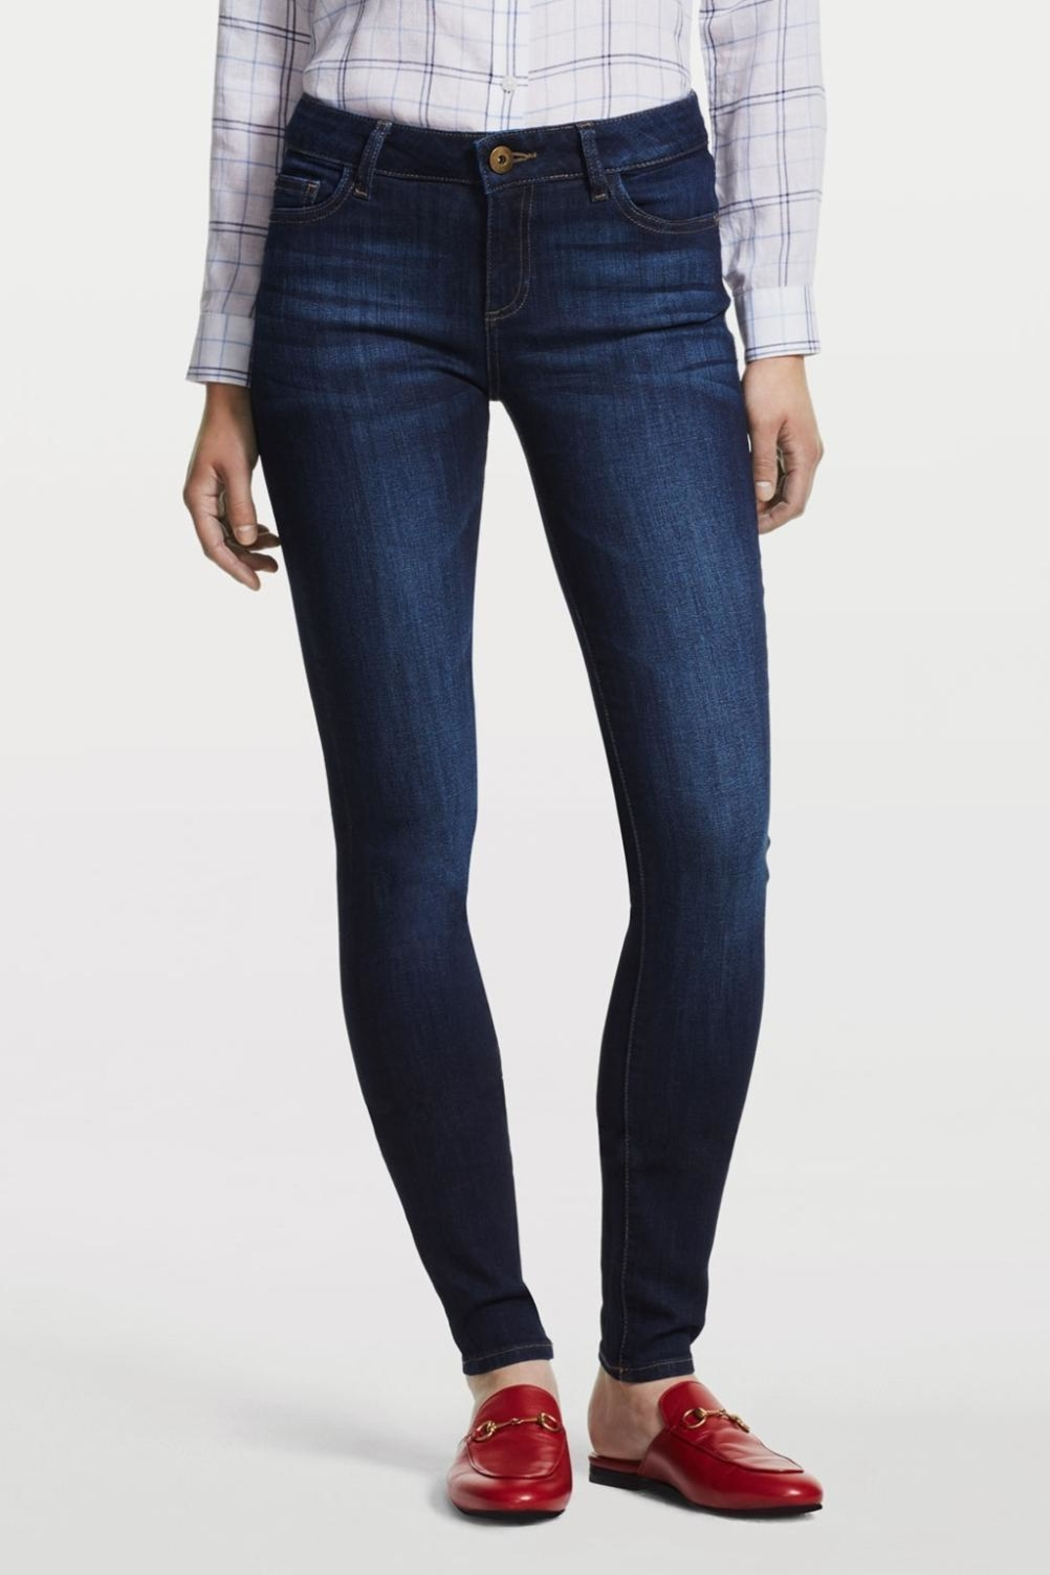 32b124b88e19 DL1961 Dark Wash Skinny Jeans from North Shore by Assets Jean Co ...